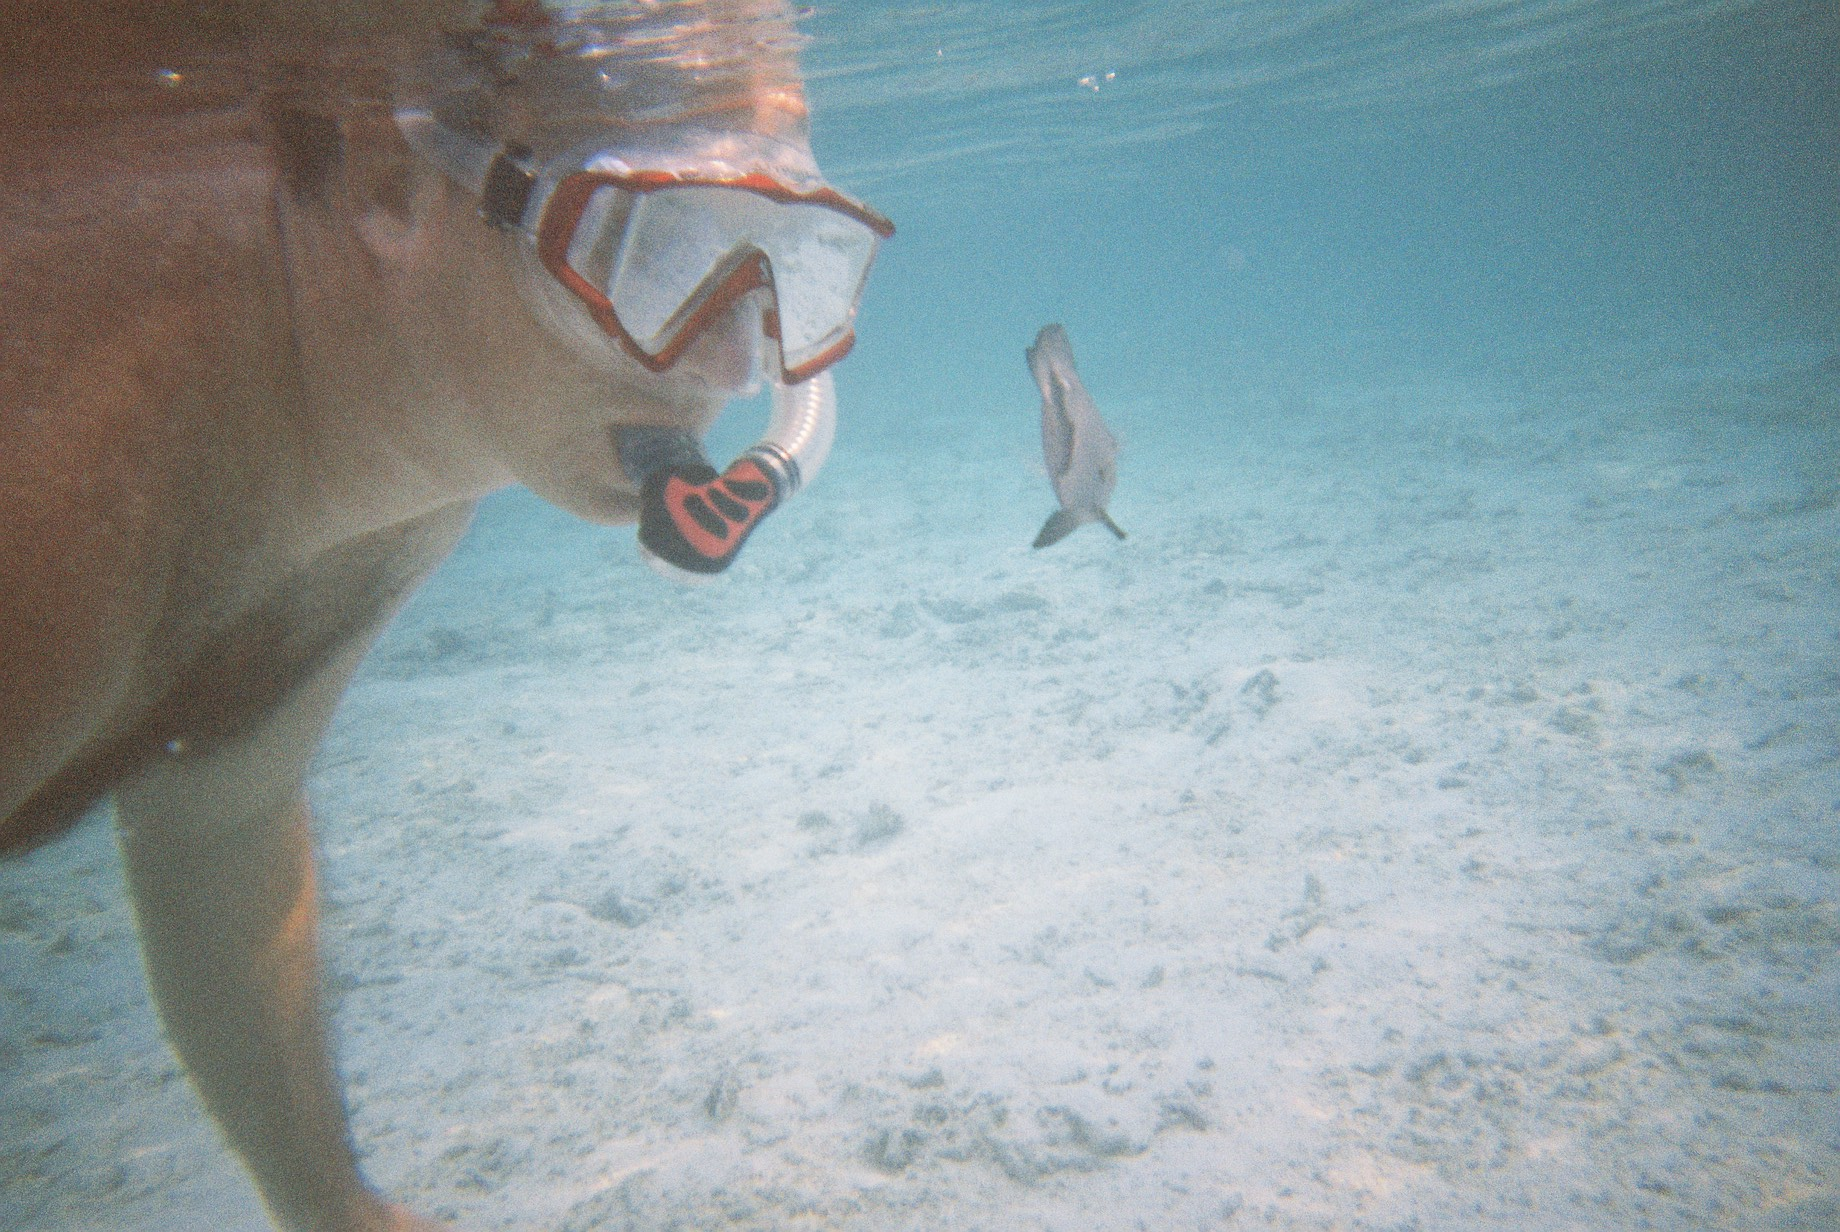 Maldives snorkelling - Up Close and Personal